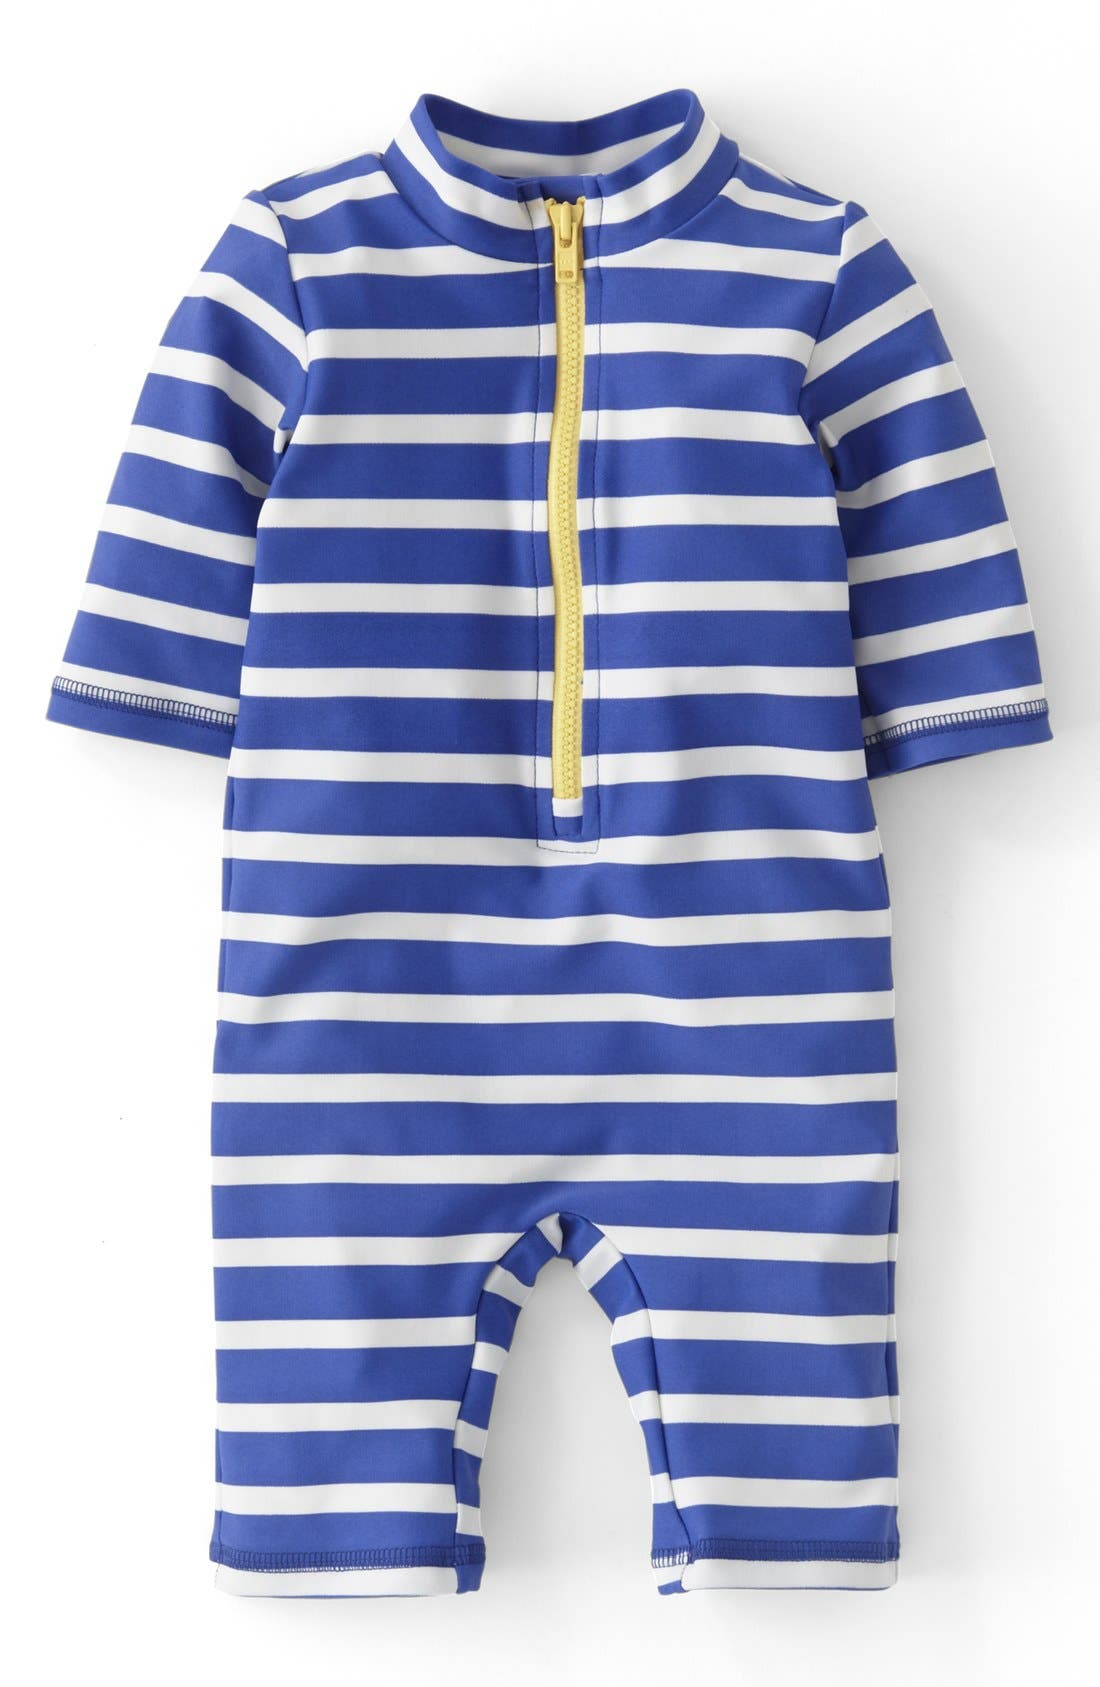 Alternate Image 1 Selected - Mini Boden Surf Suit (Baby Boys)